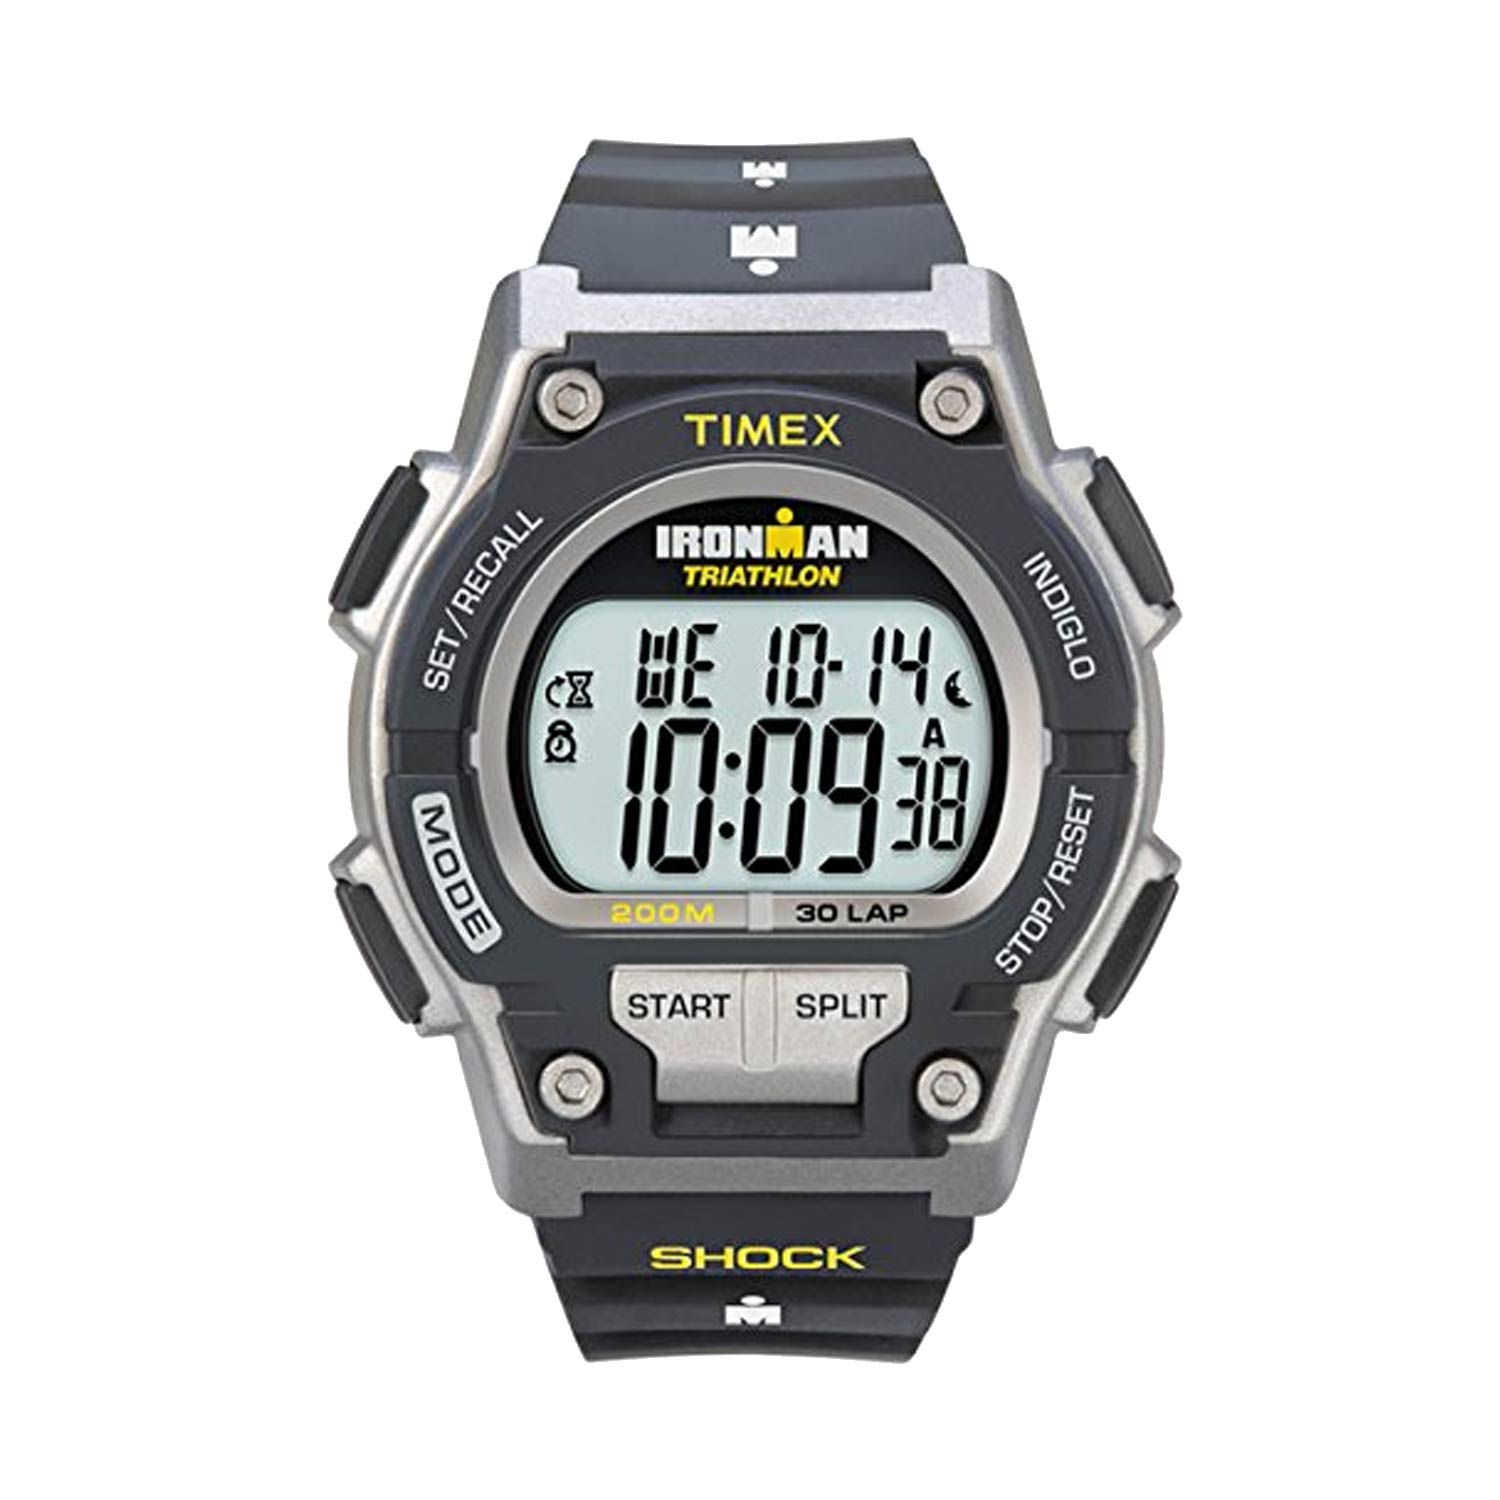 timex ironman t5k195 digitaluhr triathlon uhr f r m nner. Black Bedroom Furniture Sets. Home Design Ideas